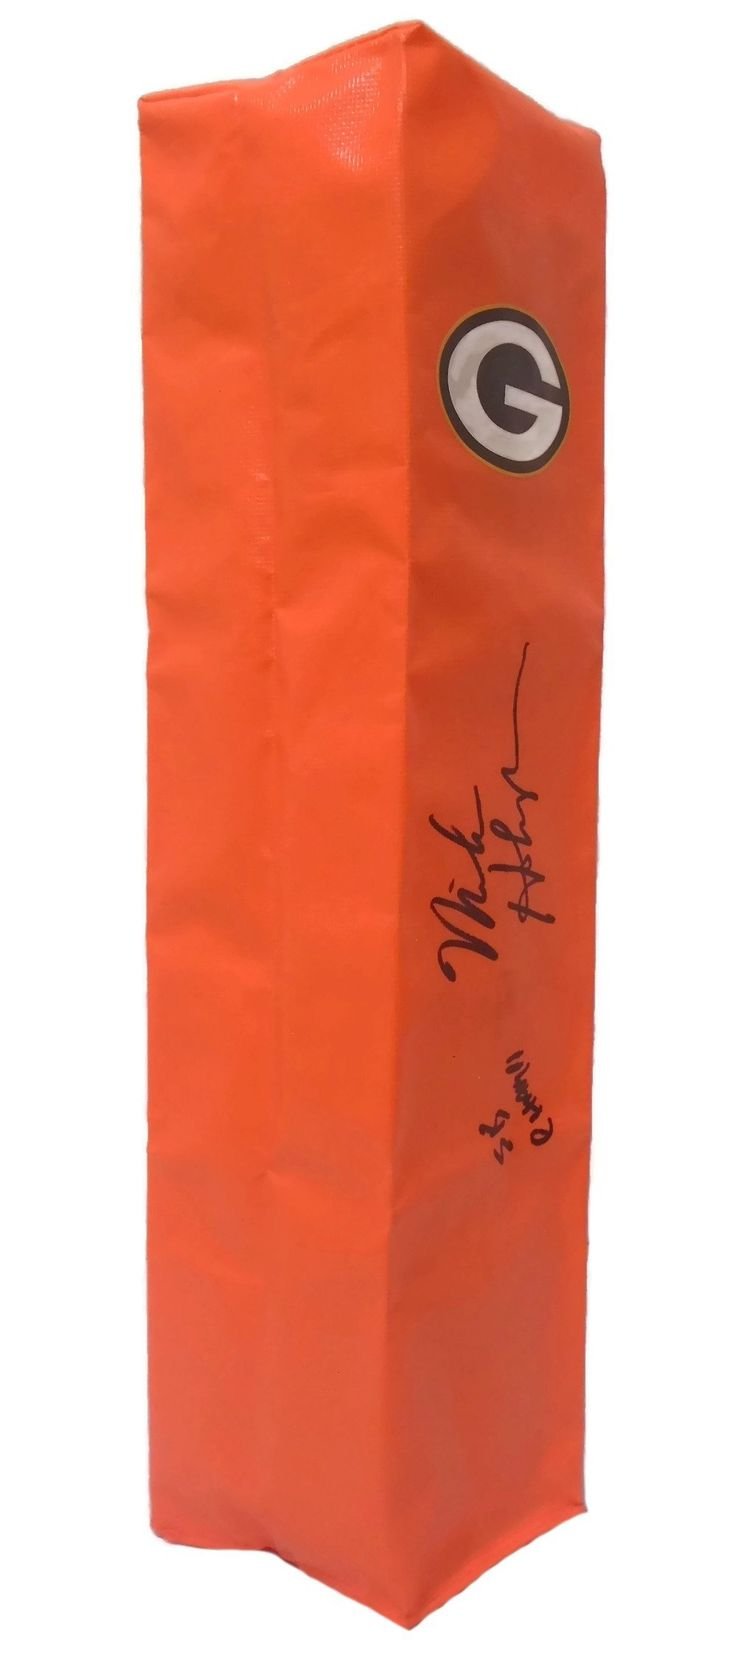 Mike Holmgren Autographed Green Bay Packers Full Size Football End Zone Touchdown Pylon, Proof